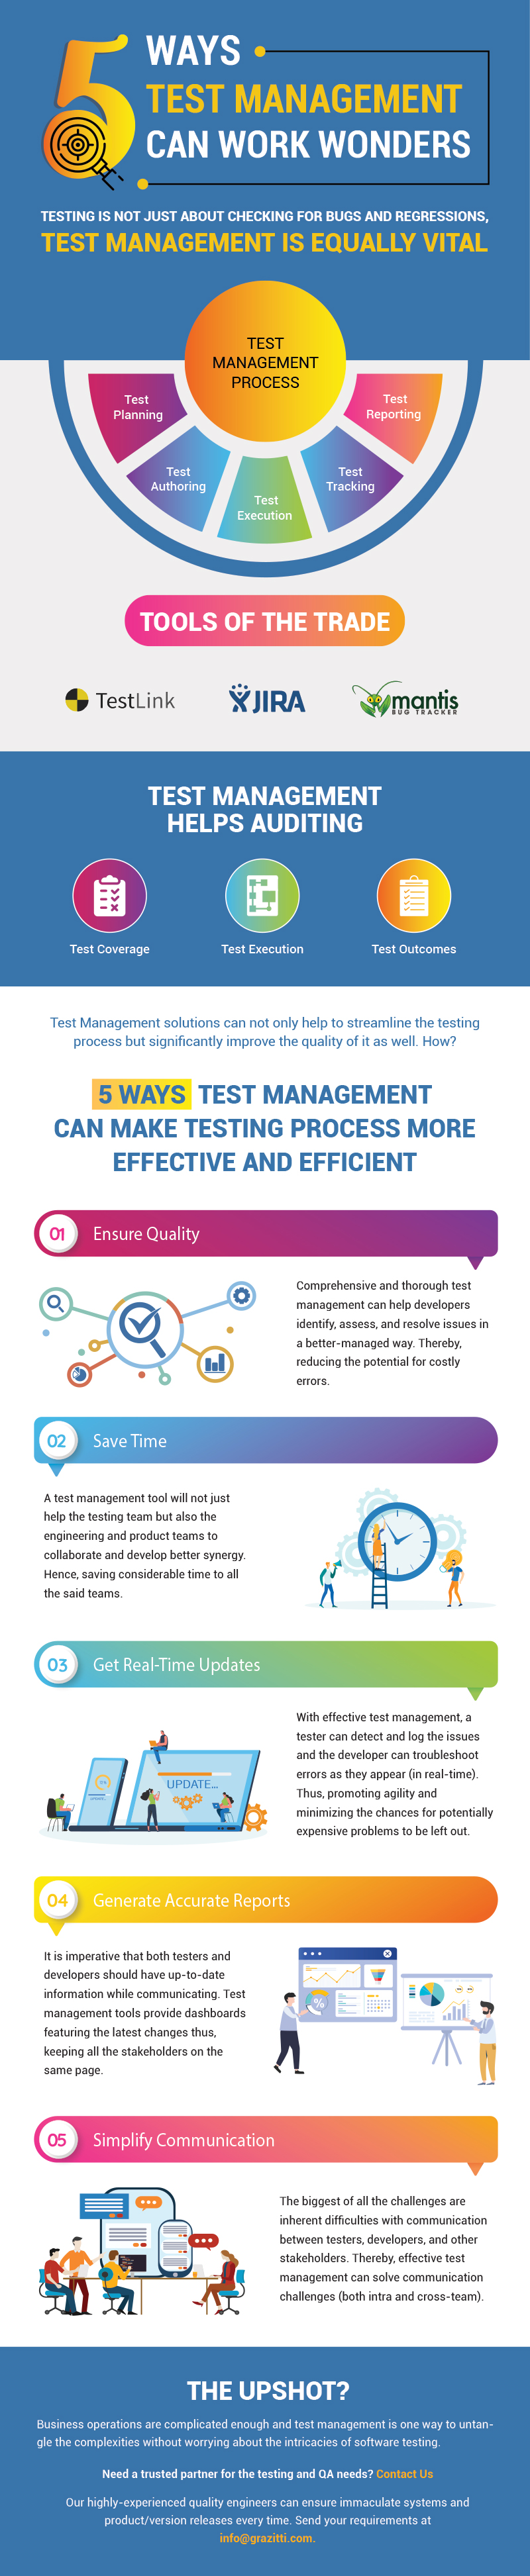 This infographic lists 5 ways of how companies can save time and money with effective test management